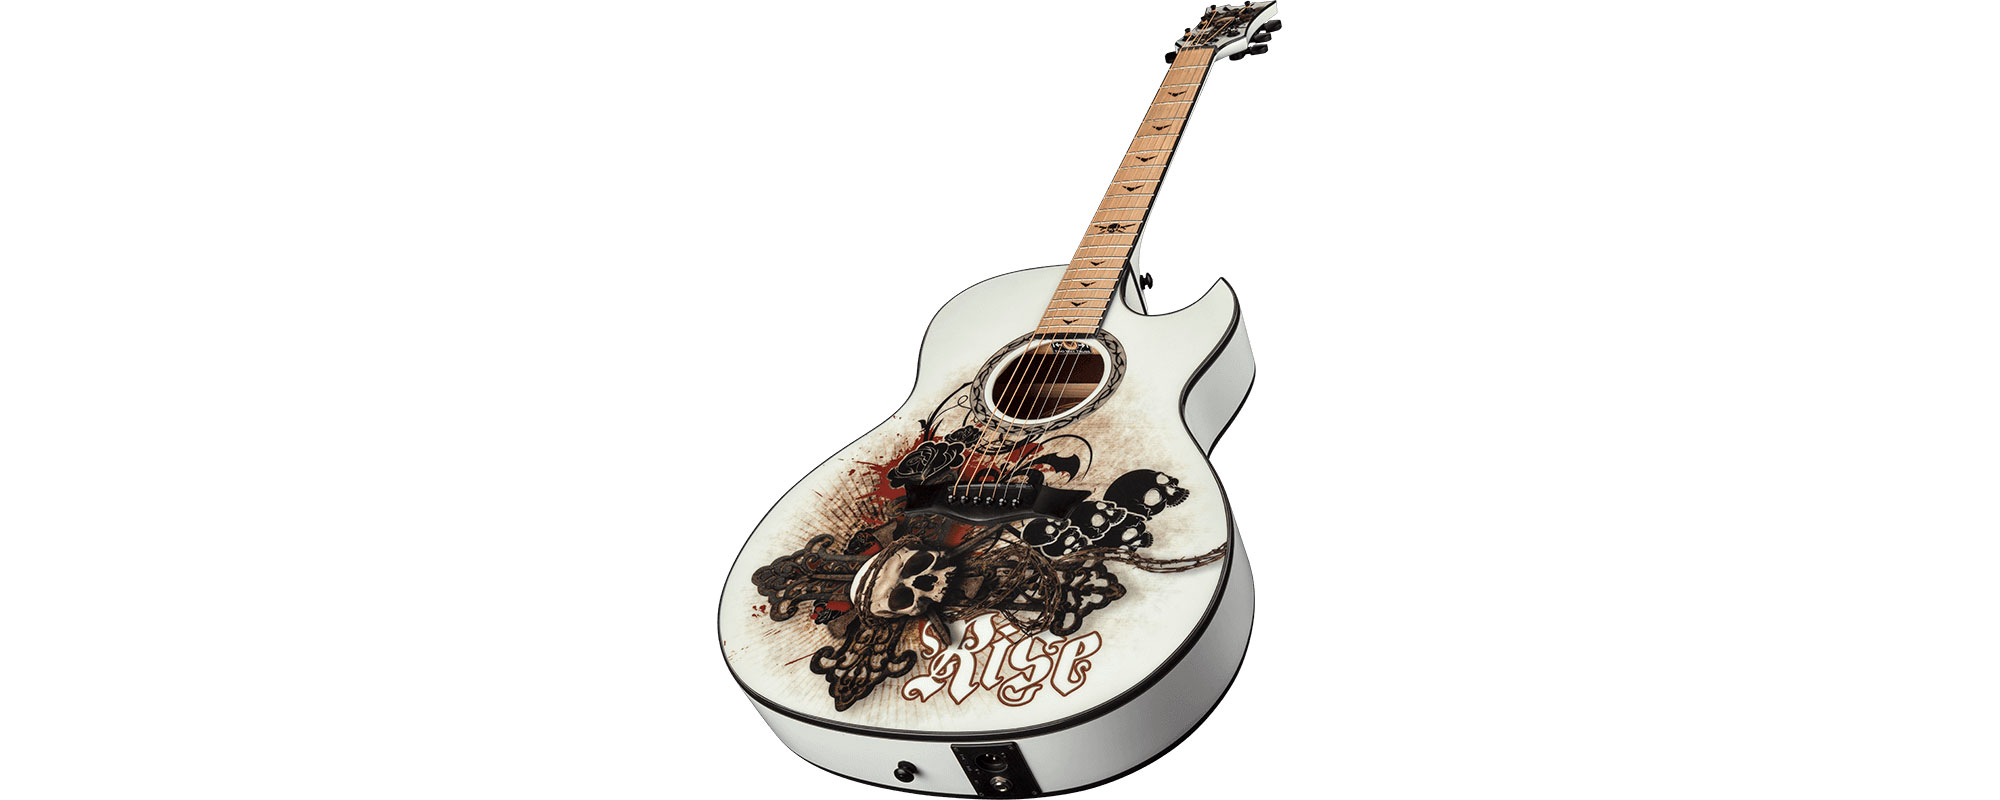 dean exhibition 6 string acoustic electric guitar w aphex exciter resurrection graphic ex. Black Bedroom Furniture Sets. Home Design Ideas